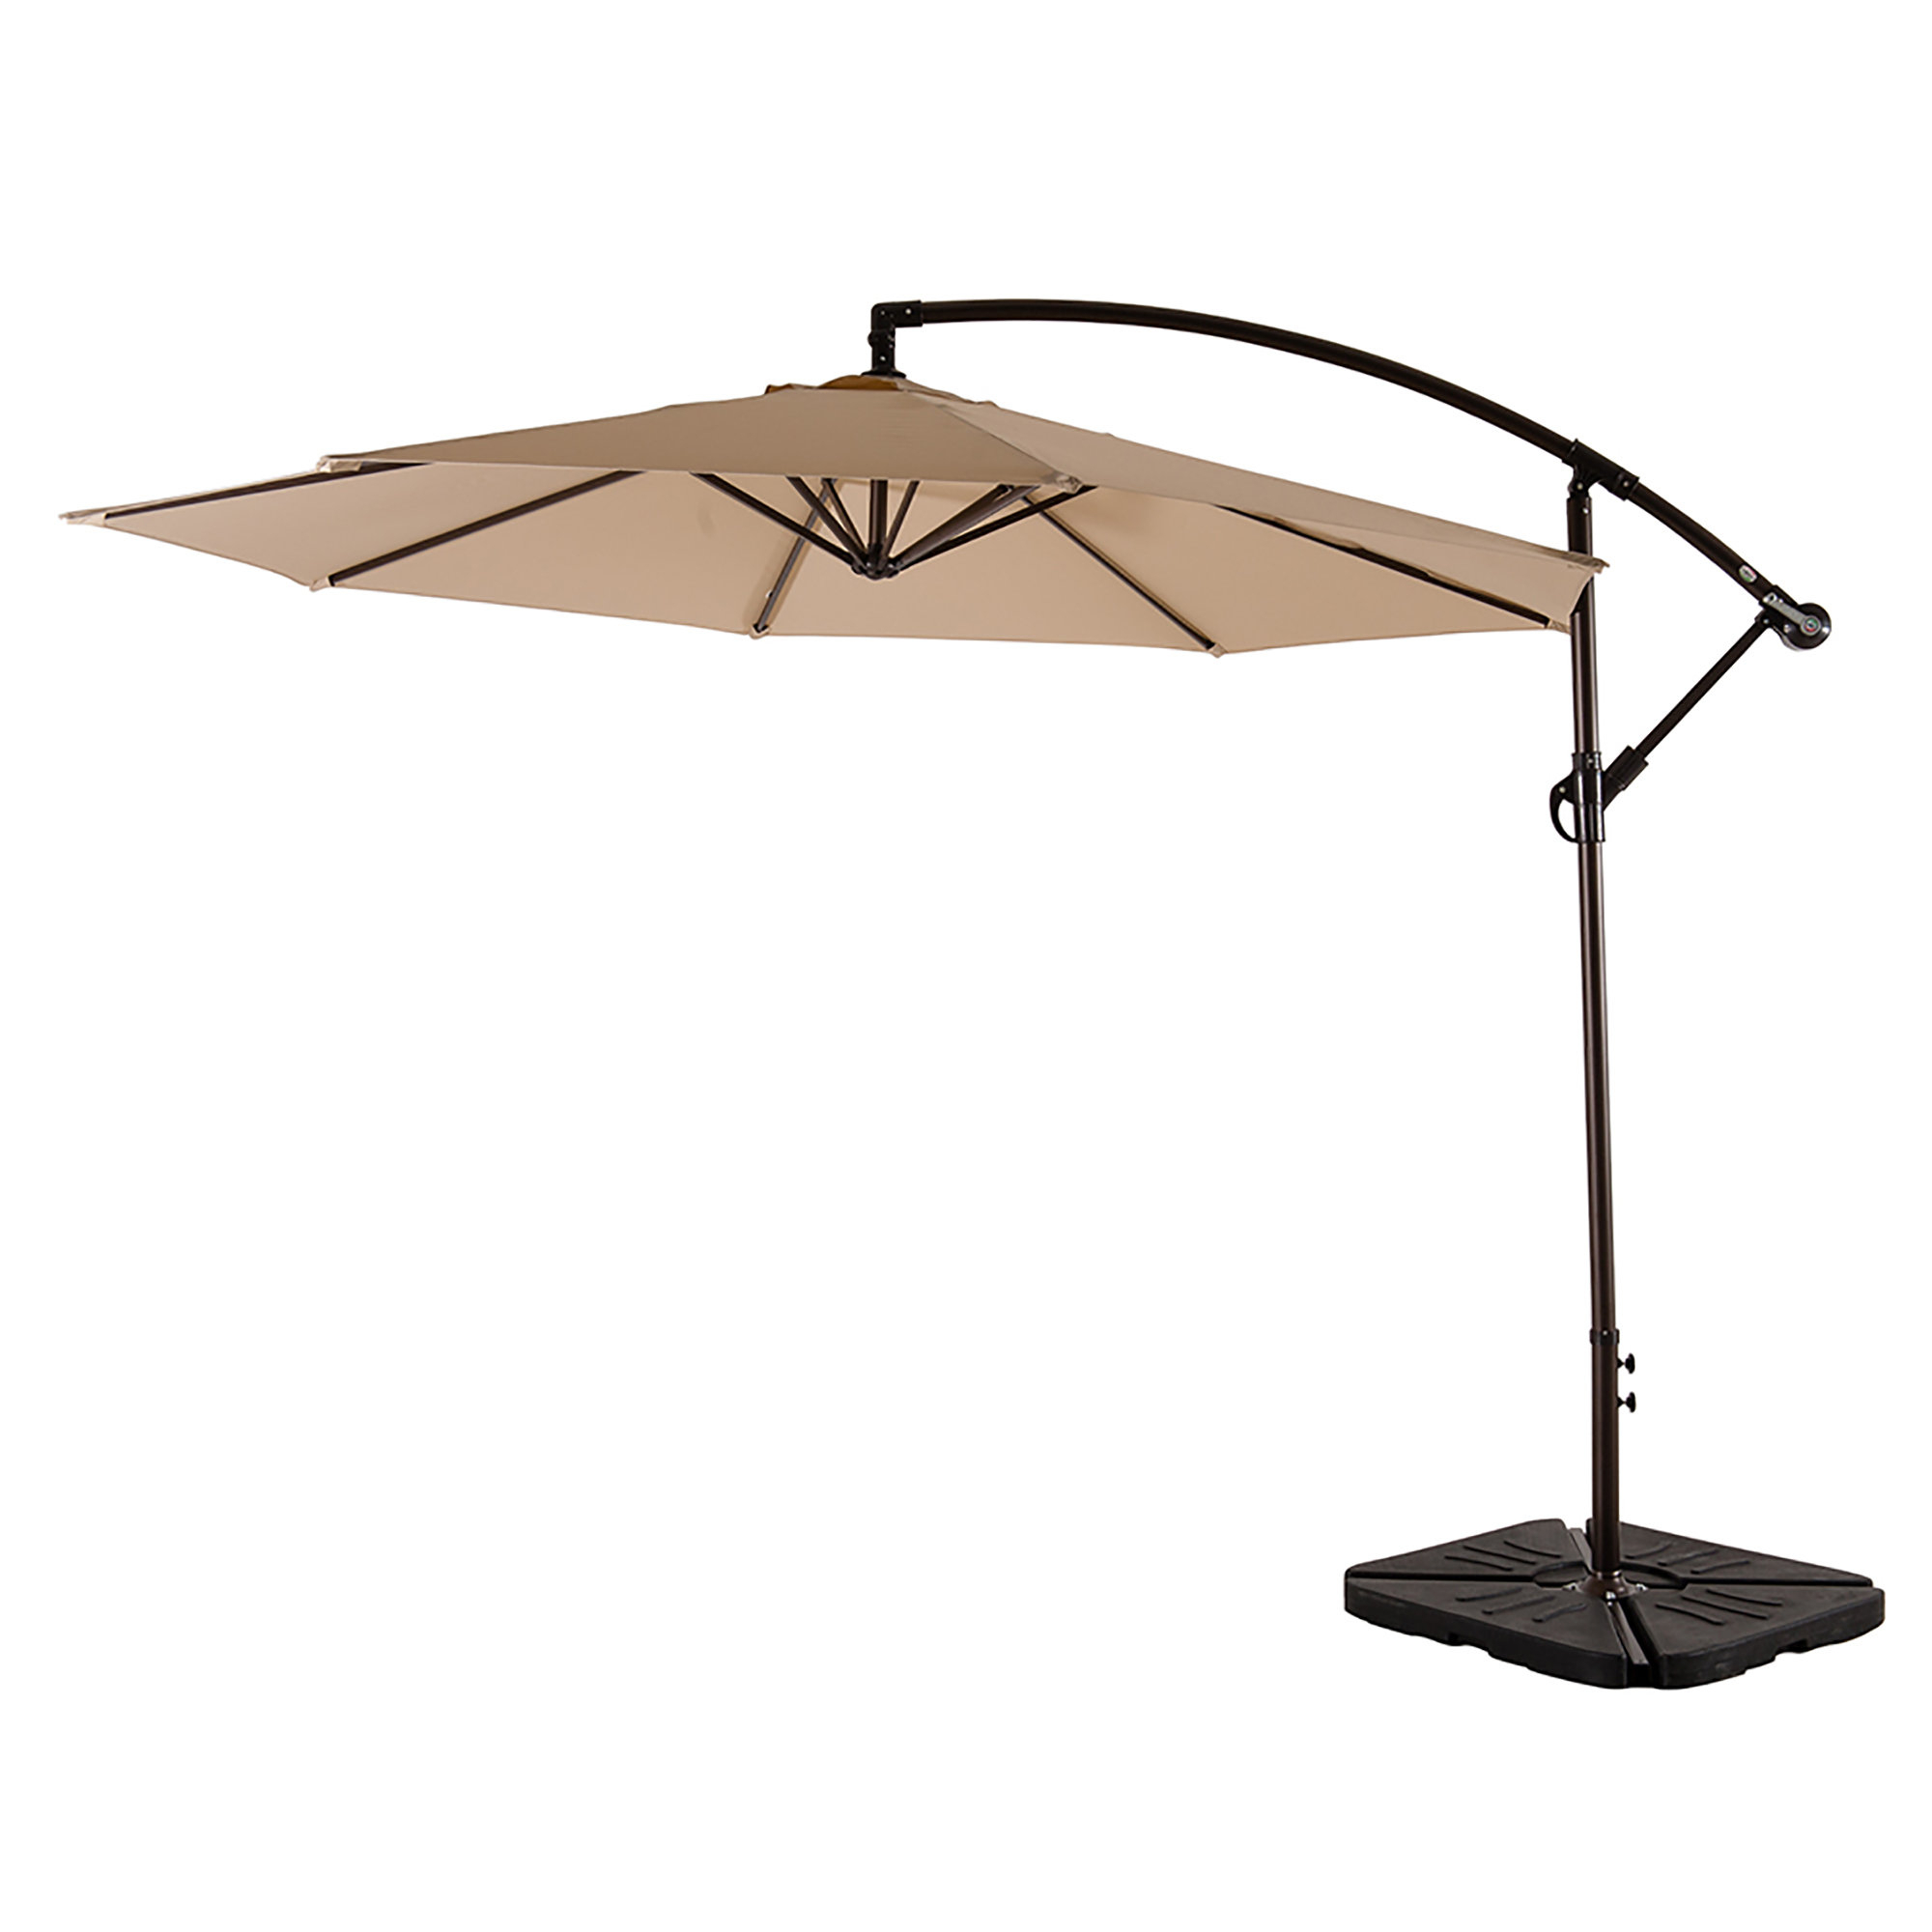 Newest Kizzie Market 10' Cantilever Umbrella Intended For Iyanna Cantilever Umbrellas (View 2 of 20)